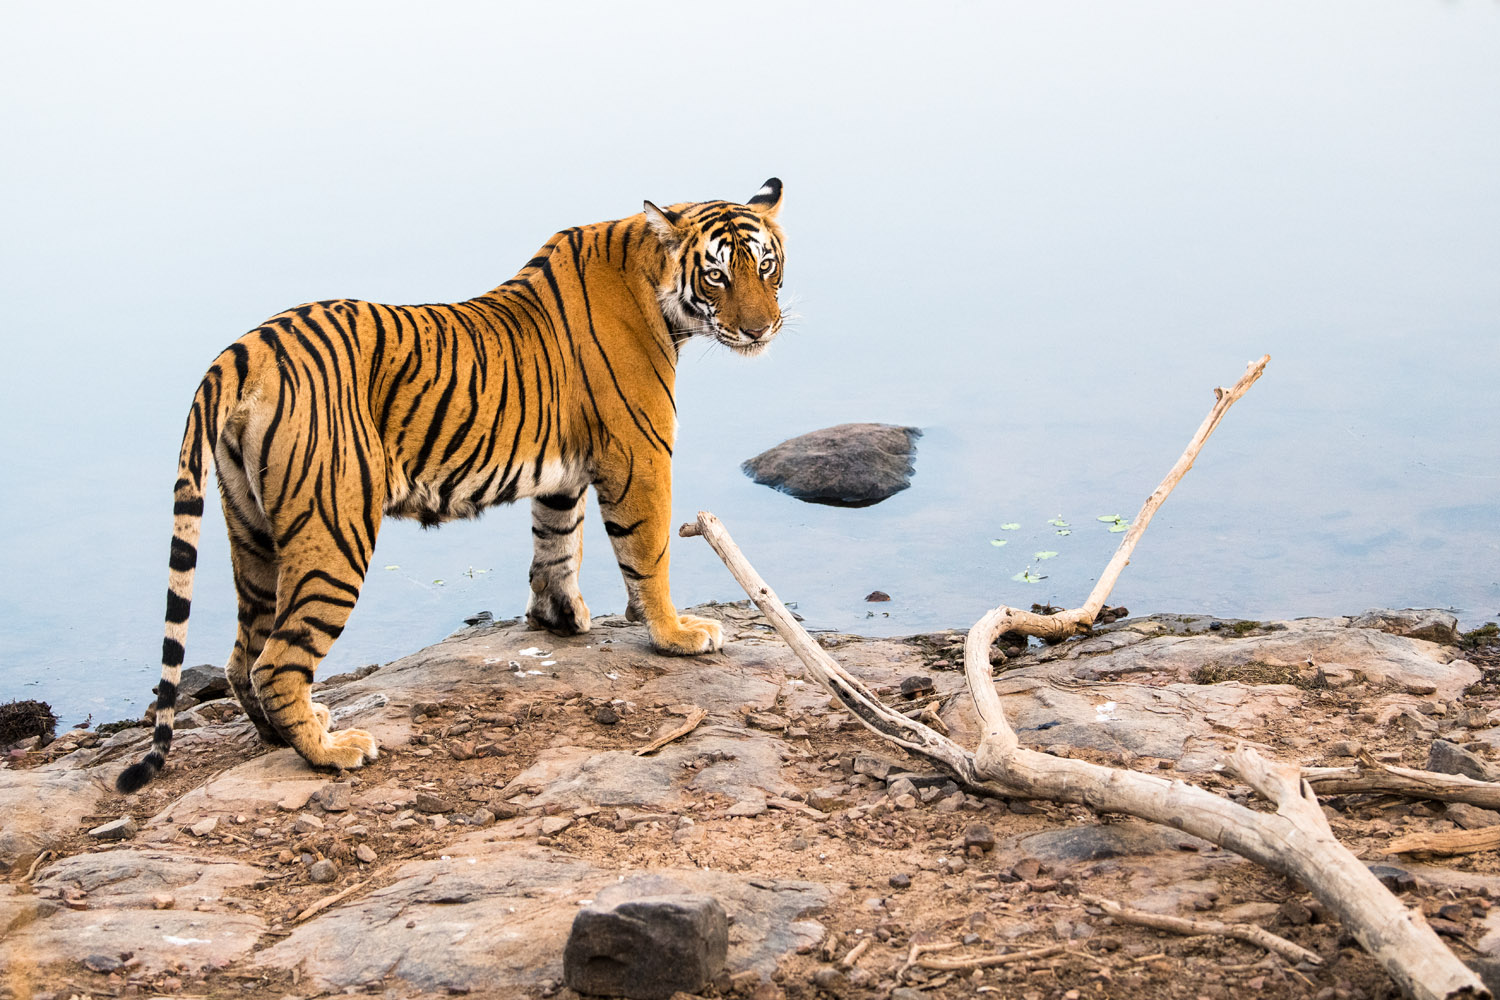 Bengal tigress at edge of lake, Ranthambhore National Park, Rajasthan, India